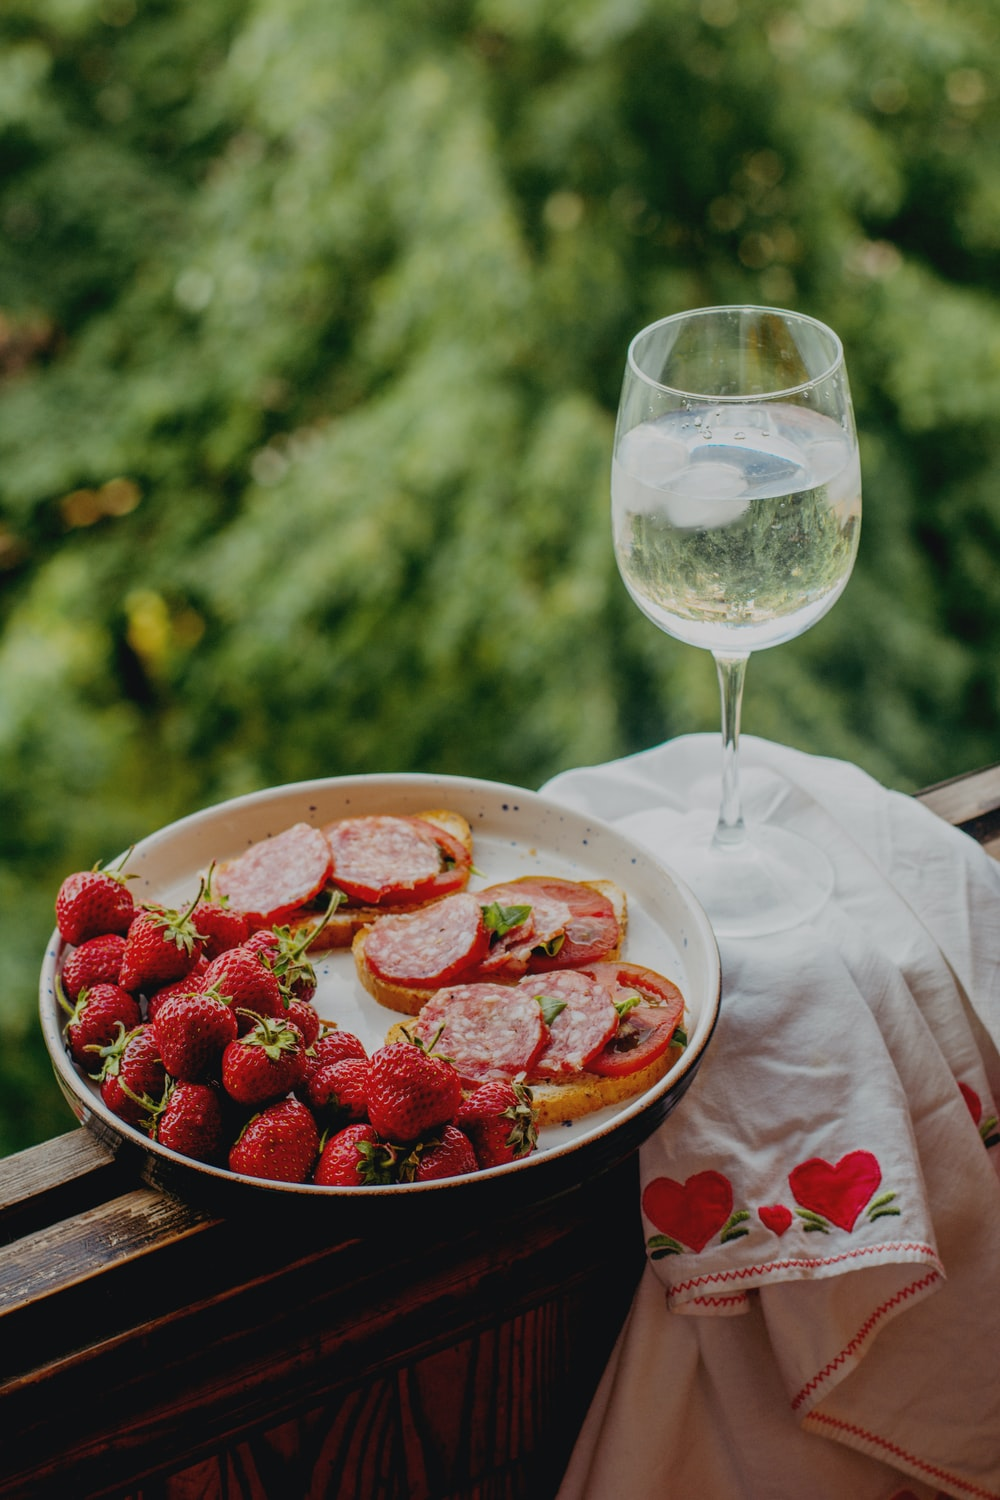 strawberries in bowl beside wine glass on table